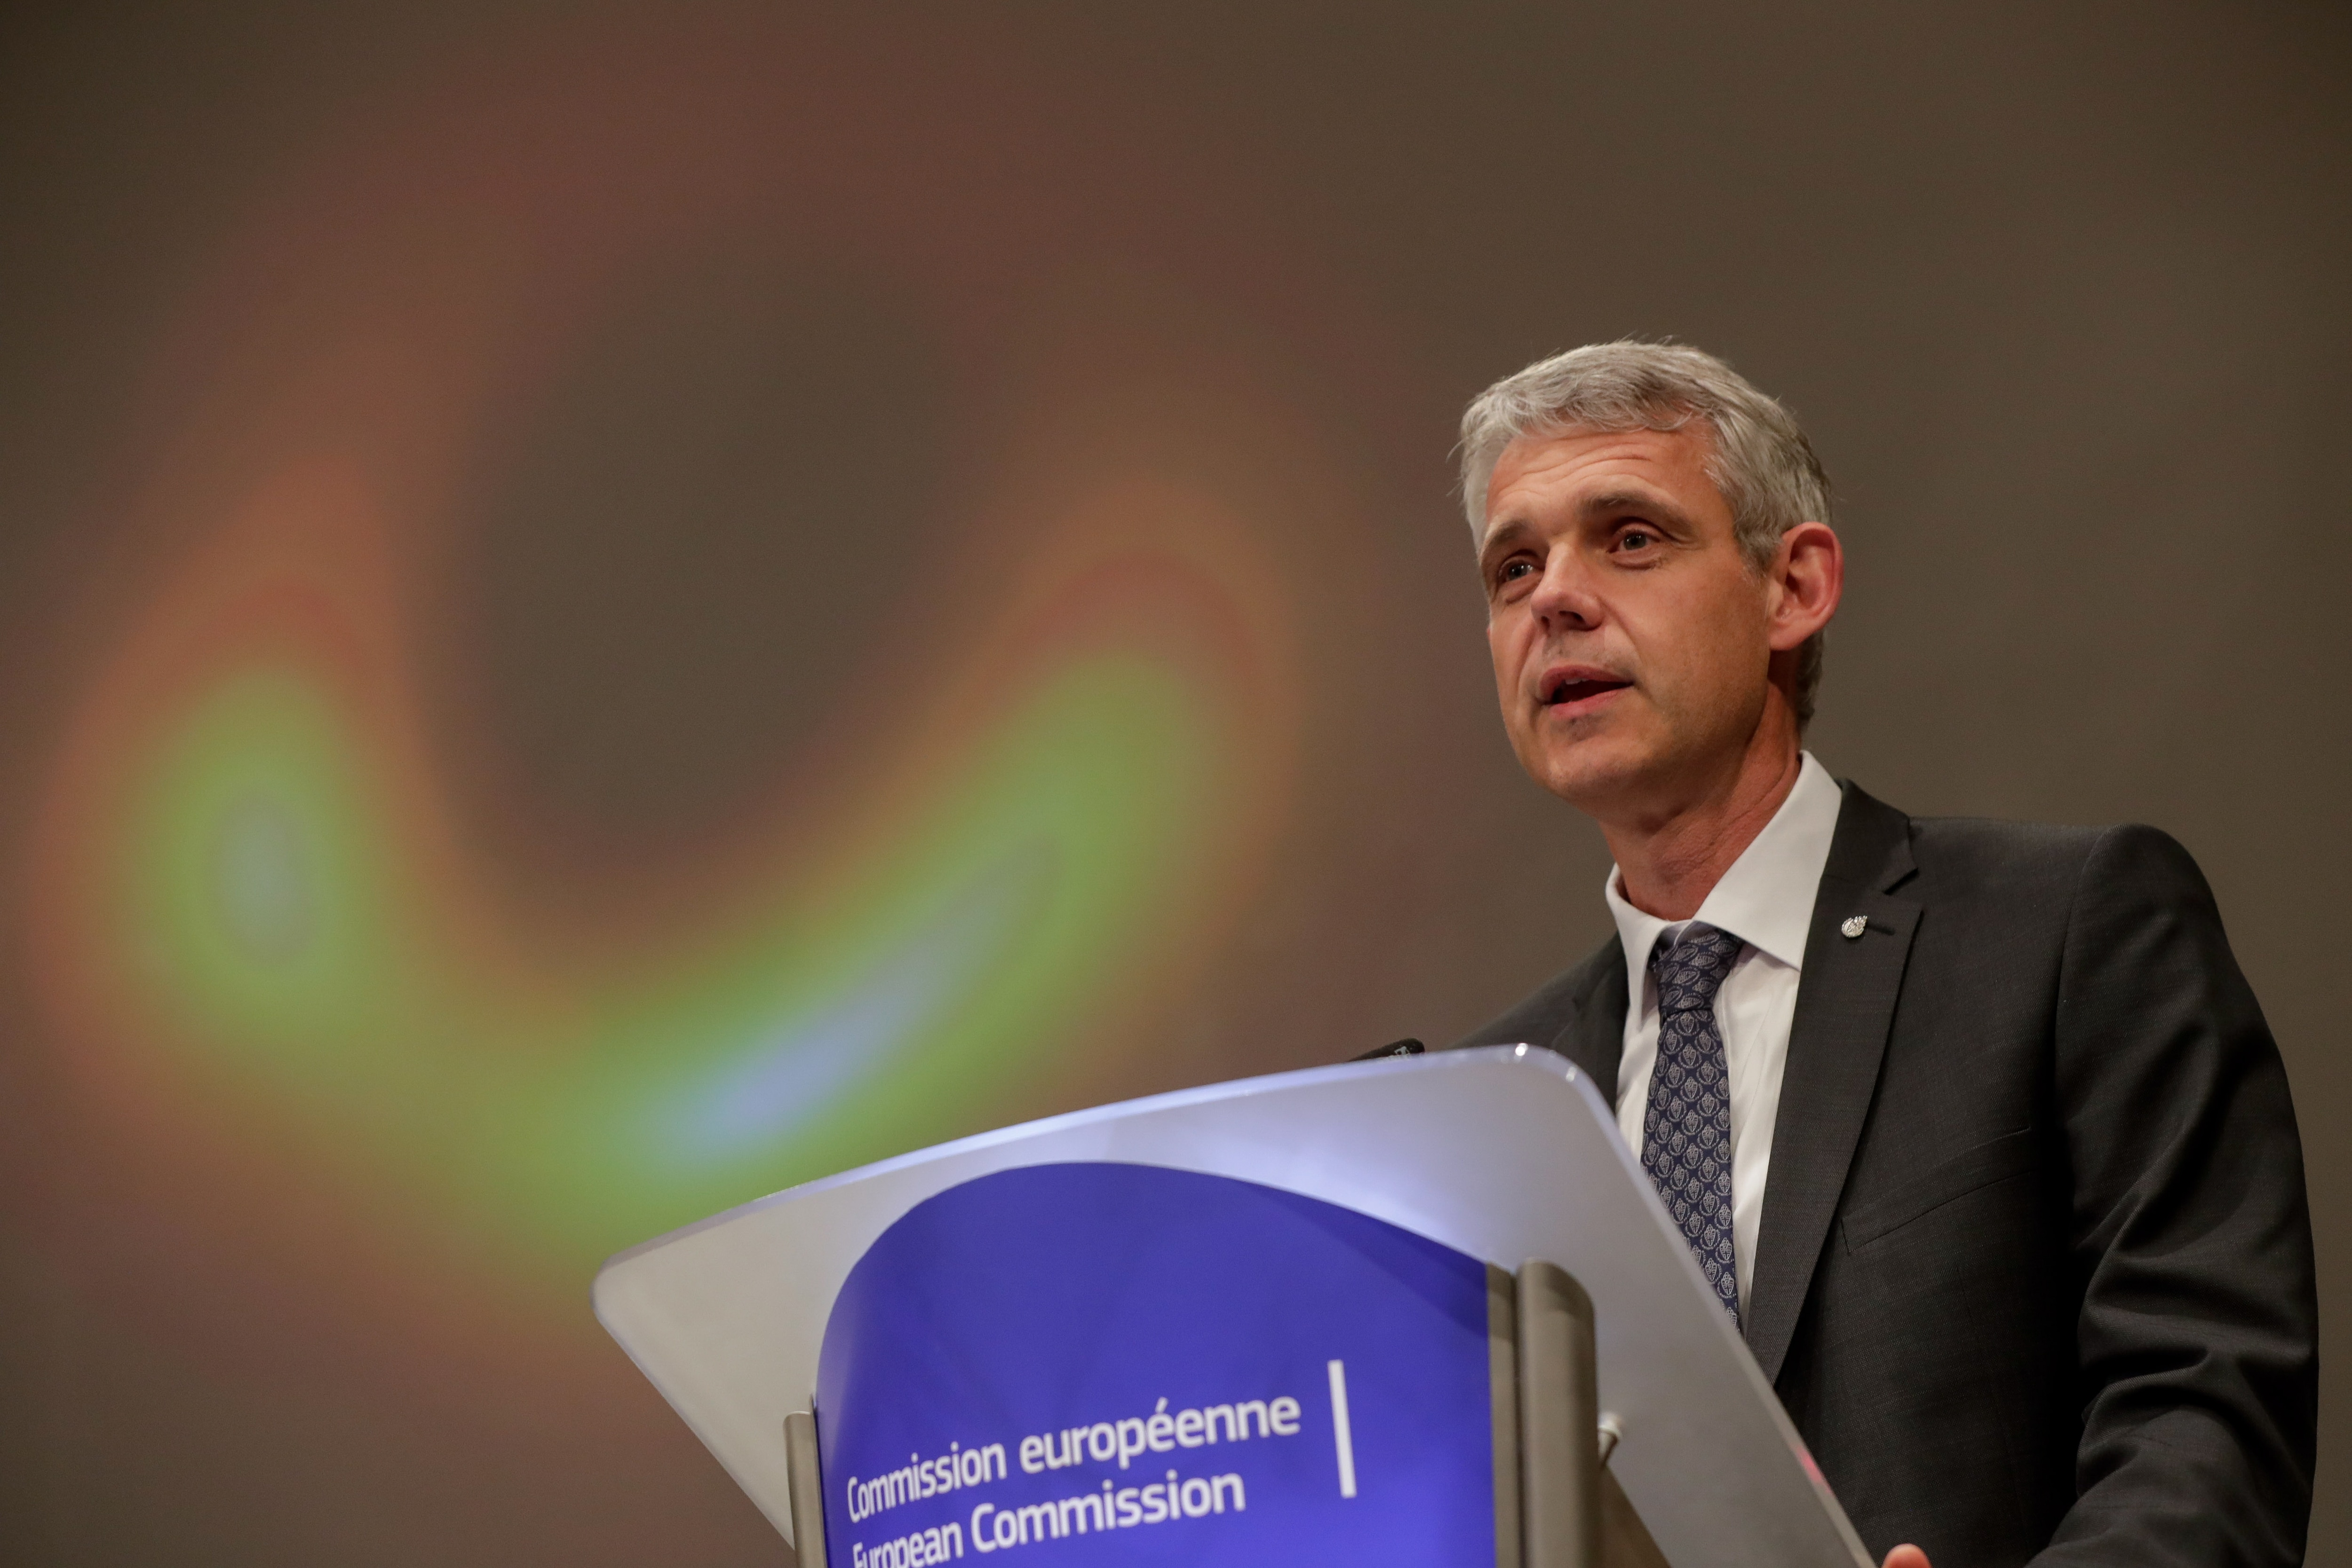 Heino Falcke, professor at the Radboud University in Nijmegen unveils the first image ever of a black hole during a press conference at the European Commission in Brussels, Belgium.